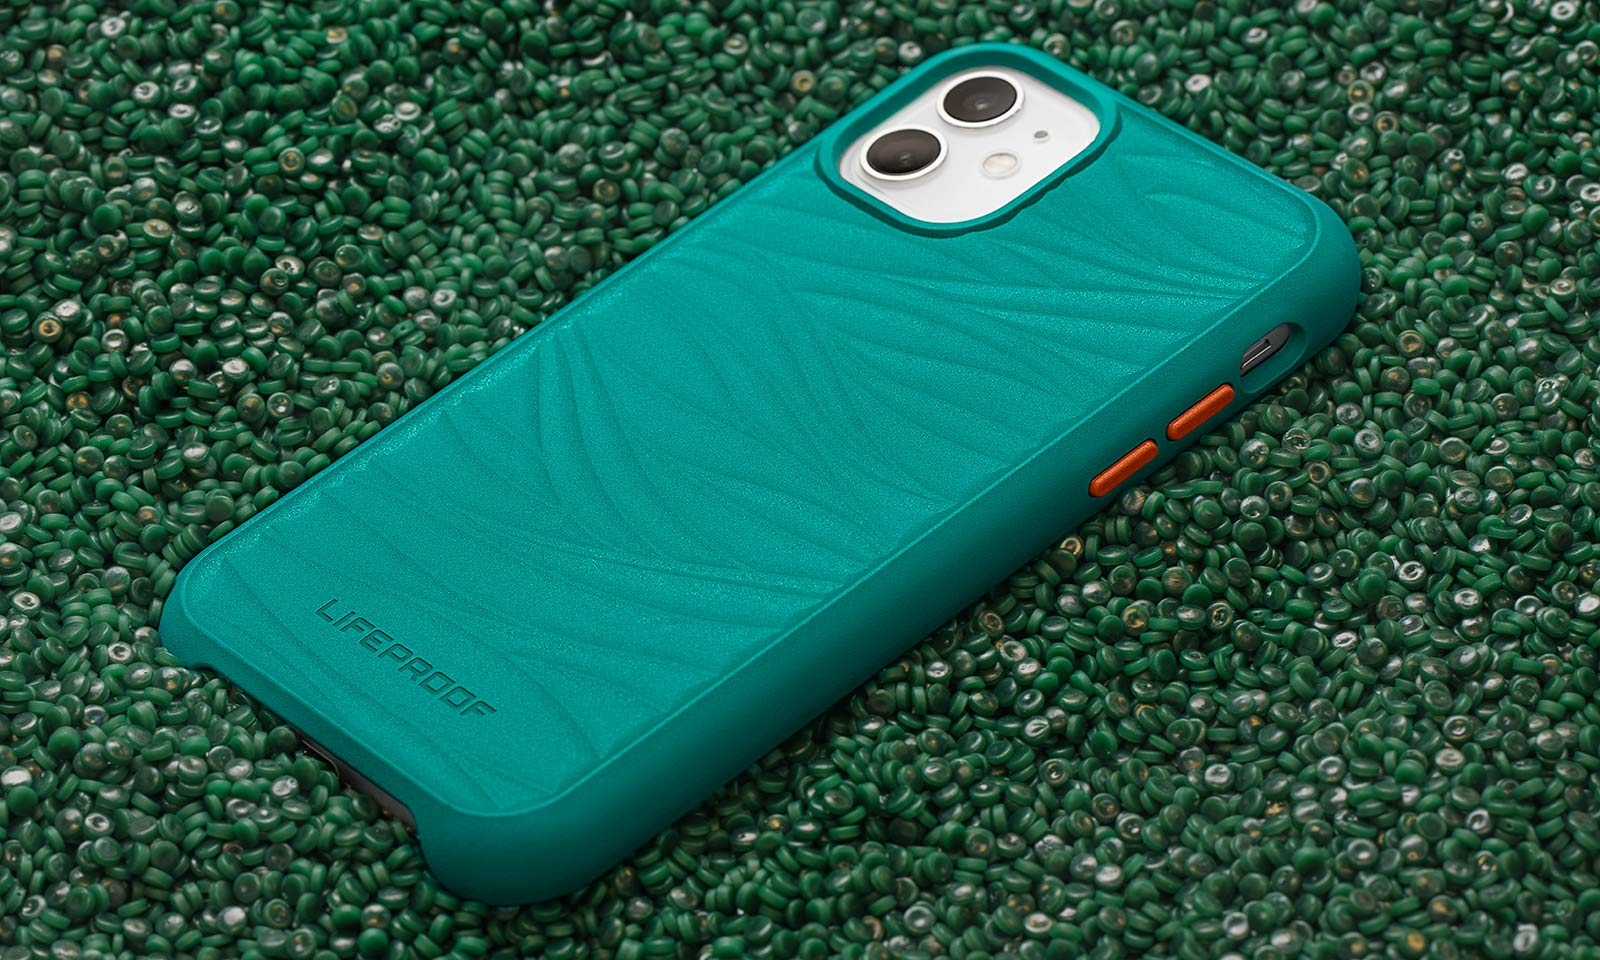 Lifeproof case made with 85% recycled ocean-based plastics